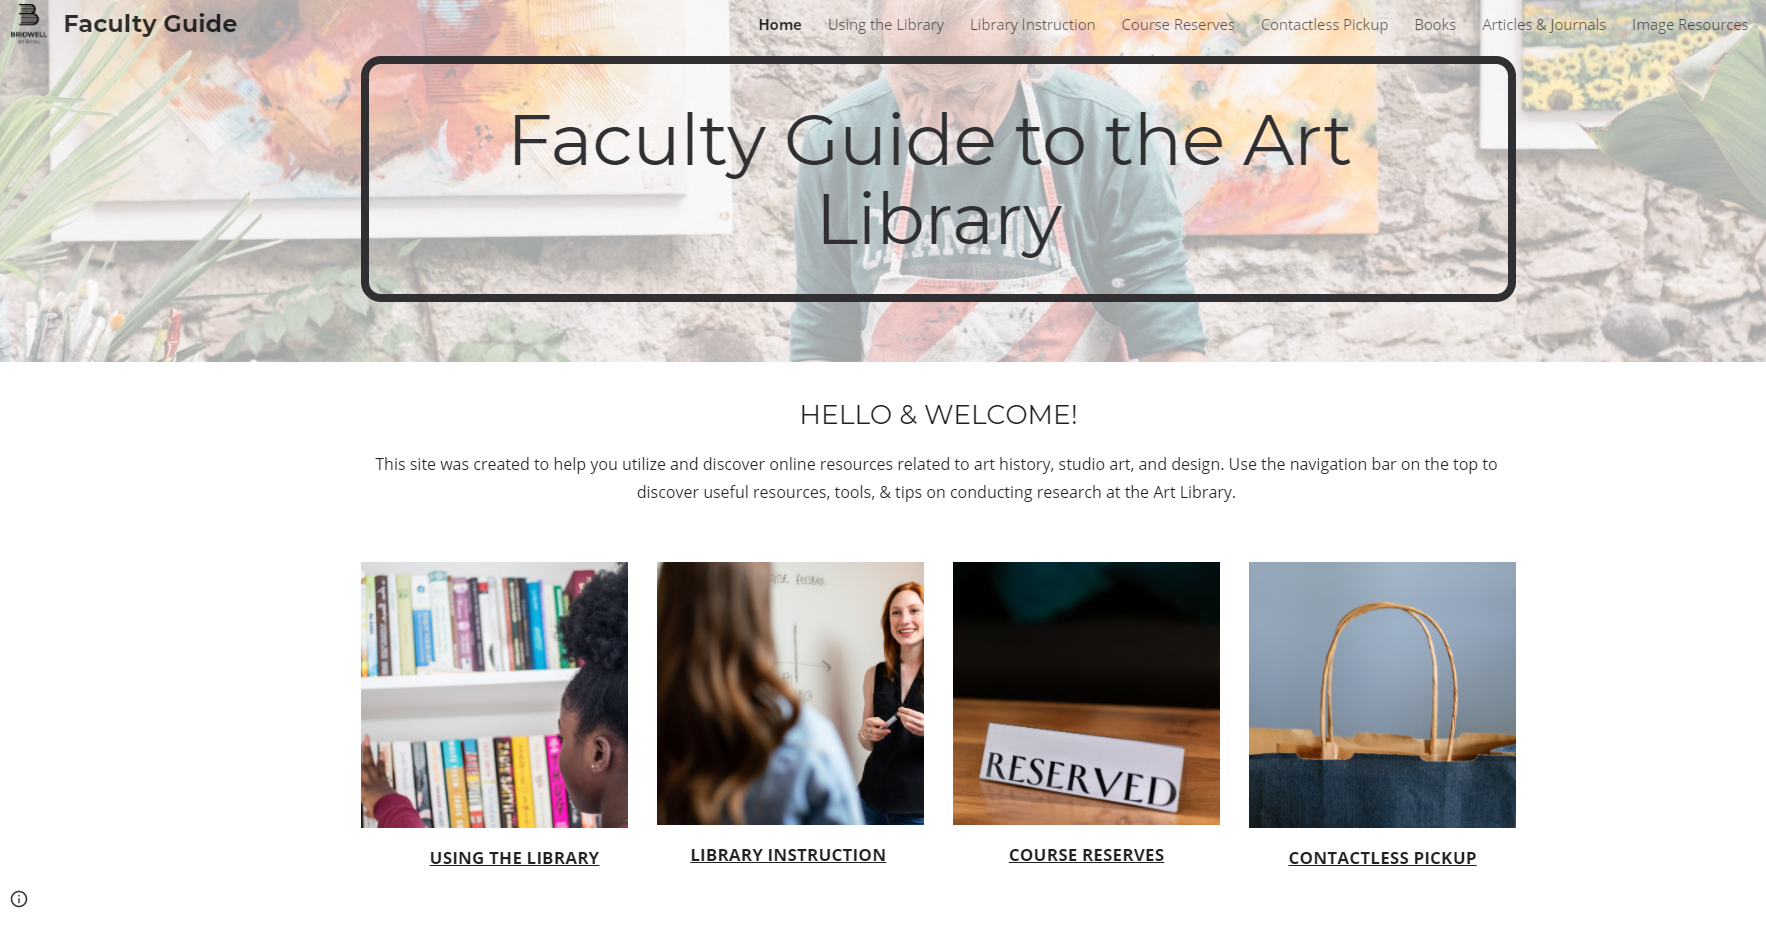 image of Faculty Guide to the Art Library